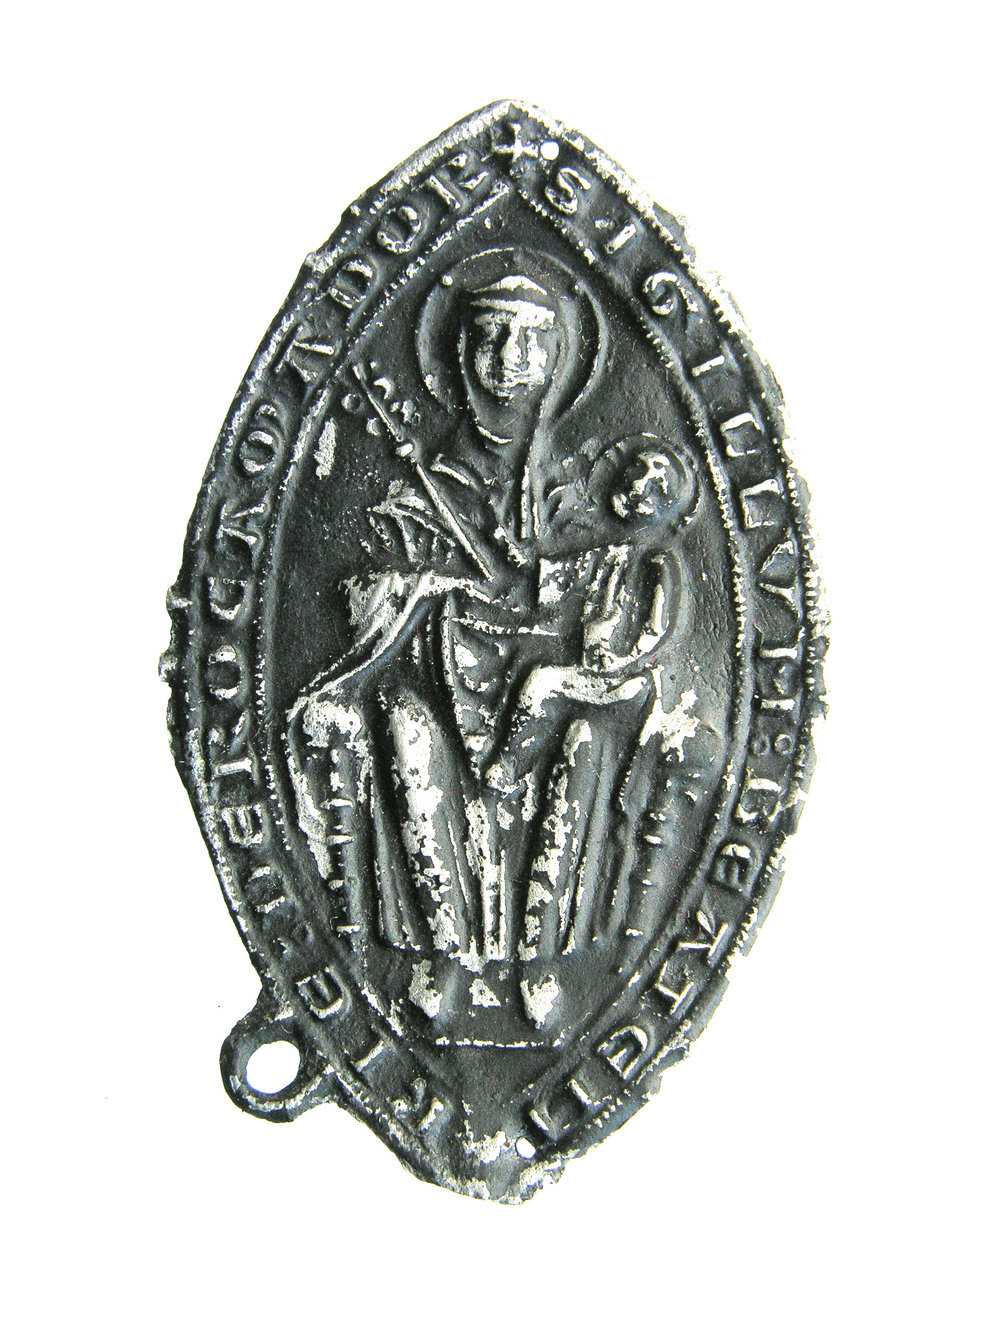 Fig. 1: Badge with the Virgin, Rocamadour, found in Reimerswaal, lead-tin alloy, 64 x 40 mm, Van Beuningen family collection, inv. no. 144 (HP1 473)